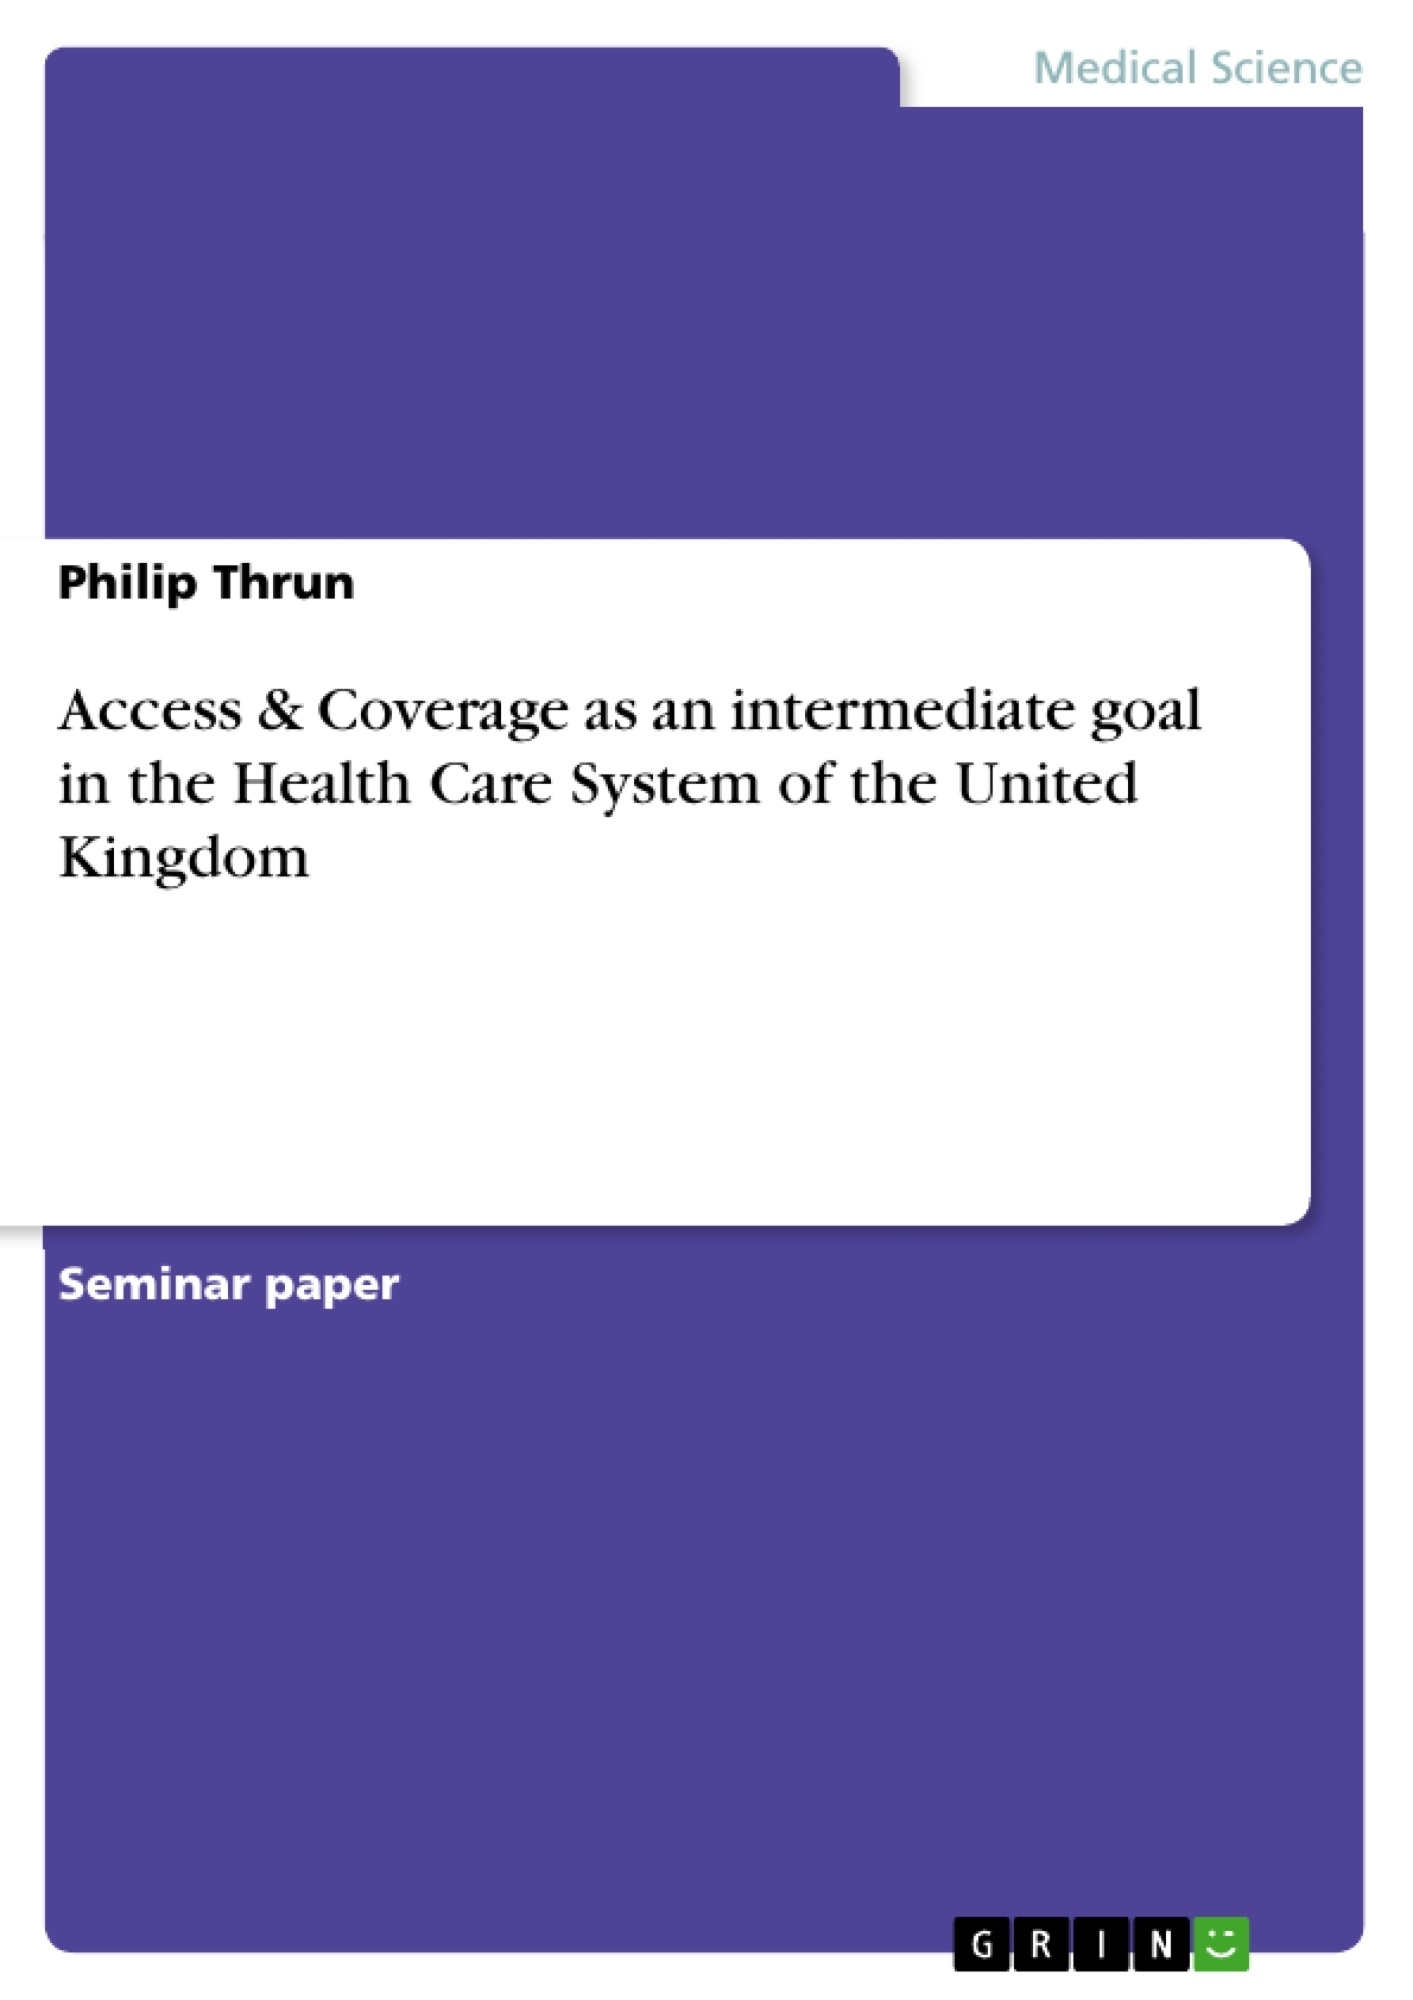 Title: Access & Coverage as an intermediate goal in the Health Care System of the United Kingdom